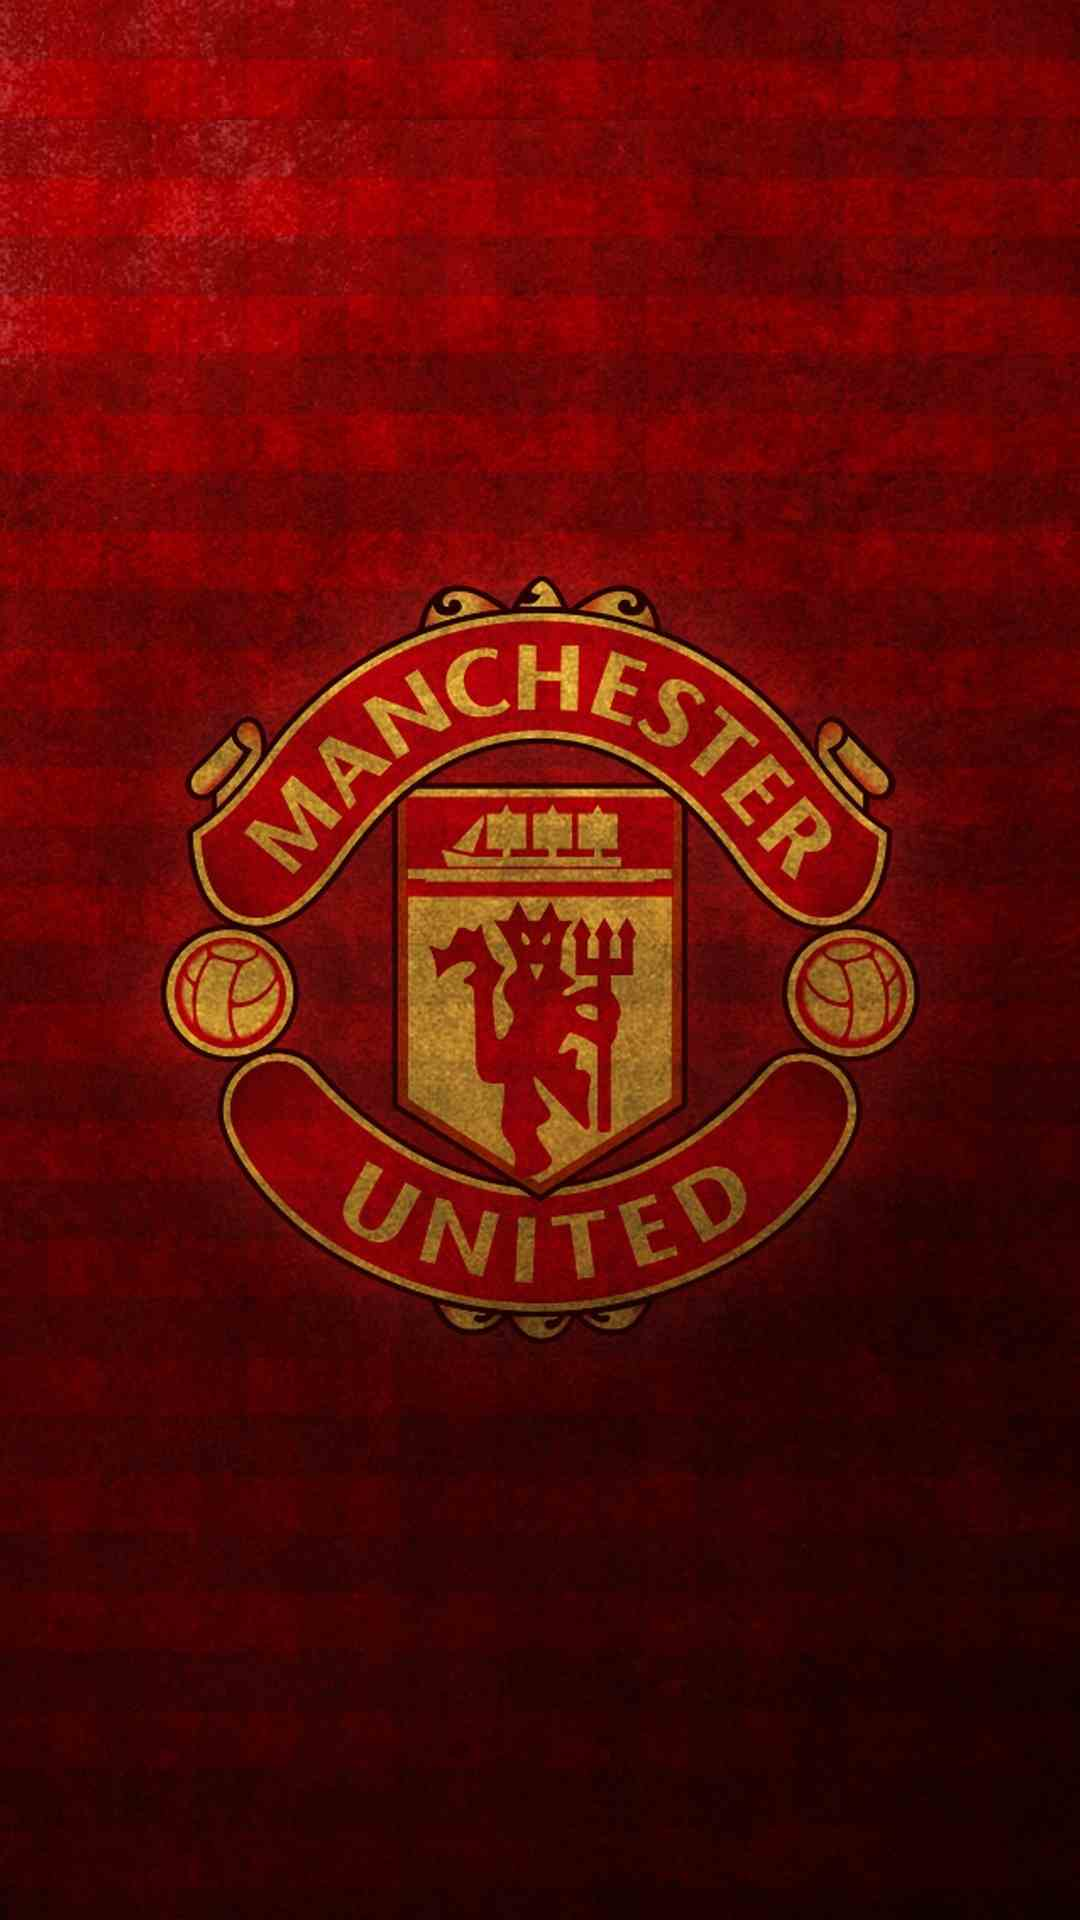 man utd phone 2020 wallpapers wallpaper cave man utd phone 2020 wallpapers